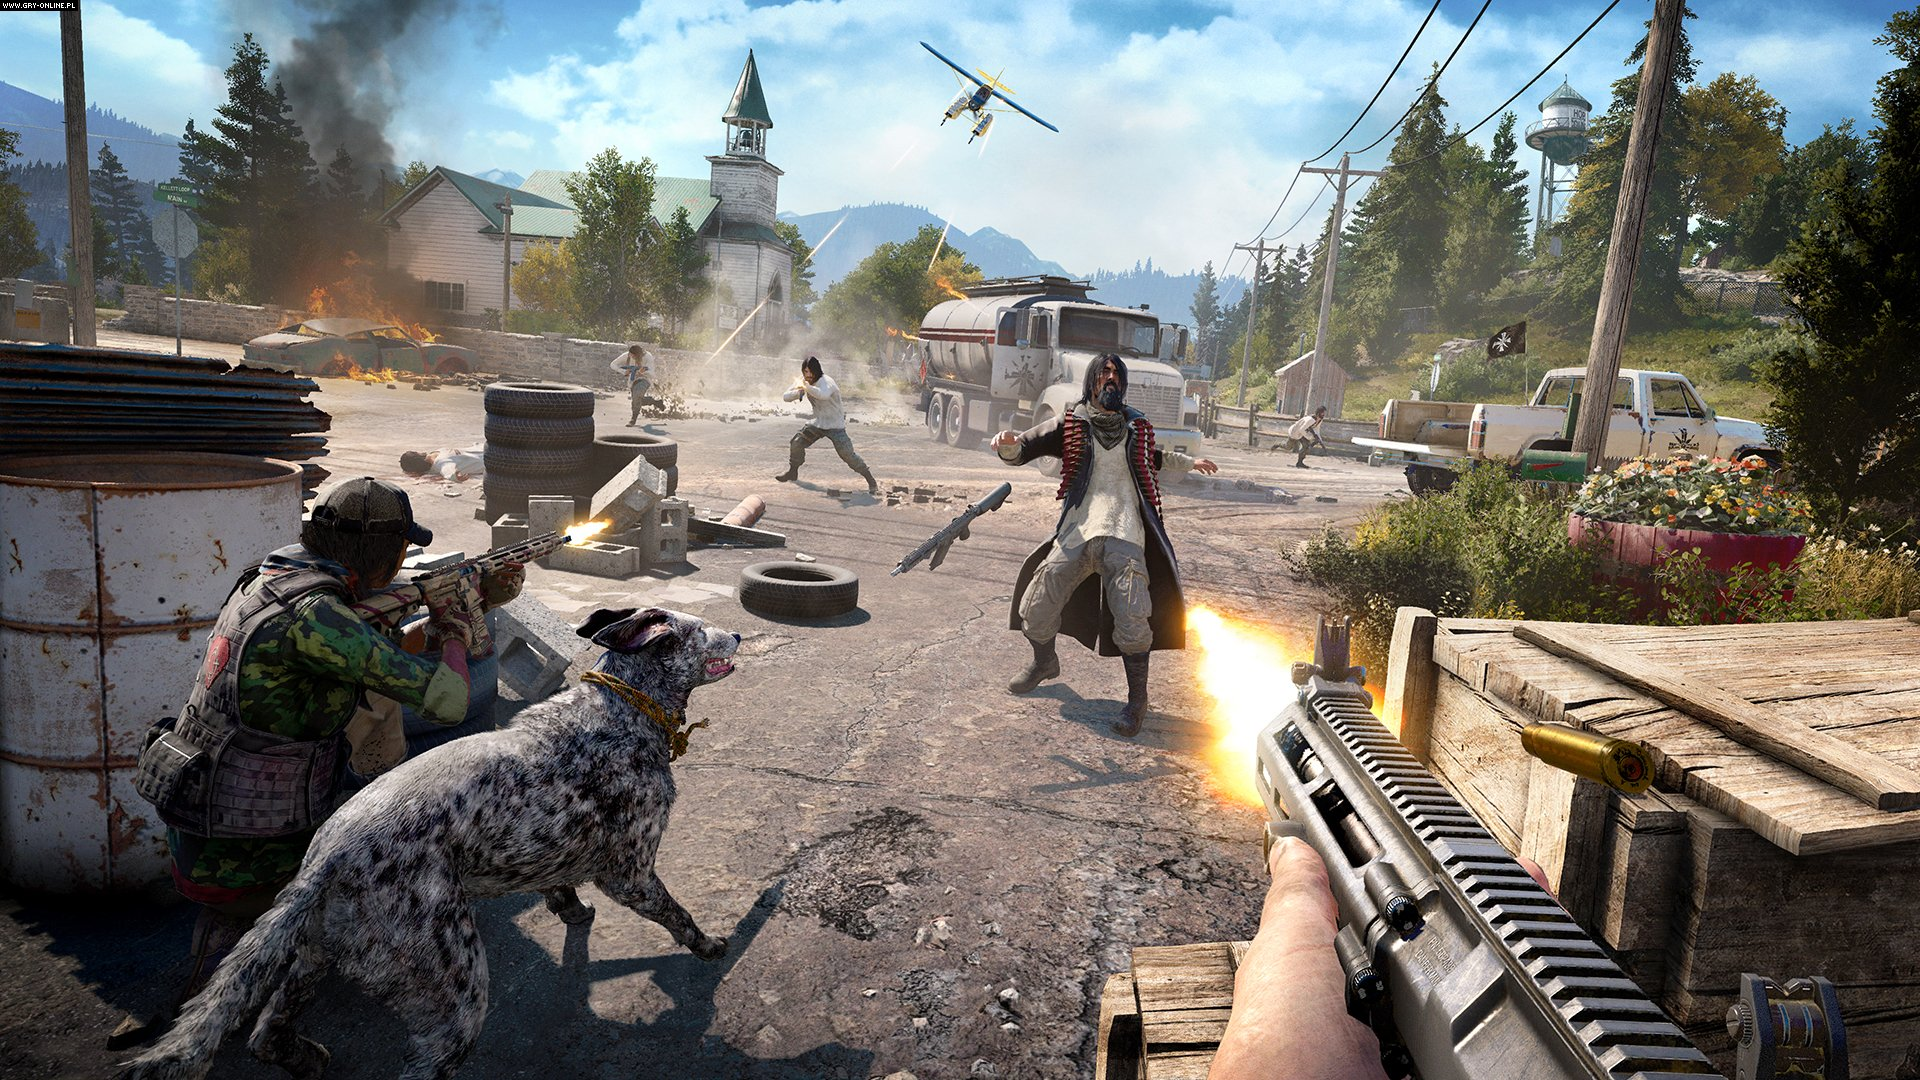 Far Cry 5 PC, PS4, XONE Games Image 24/25, Ubisoft